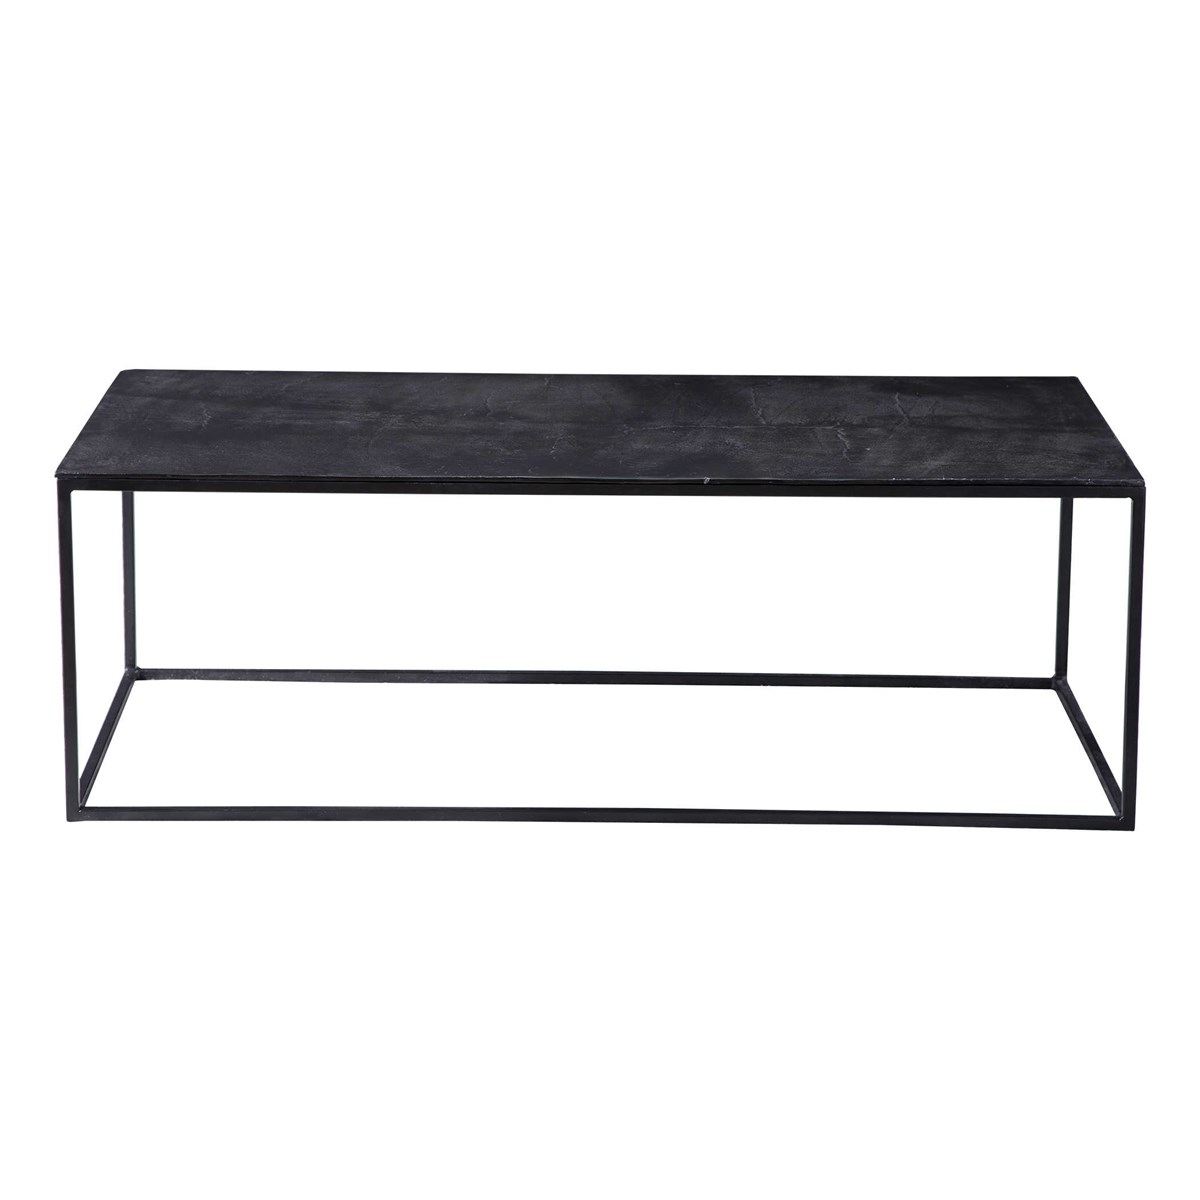 Cori Coffee Table-$698.00